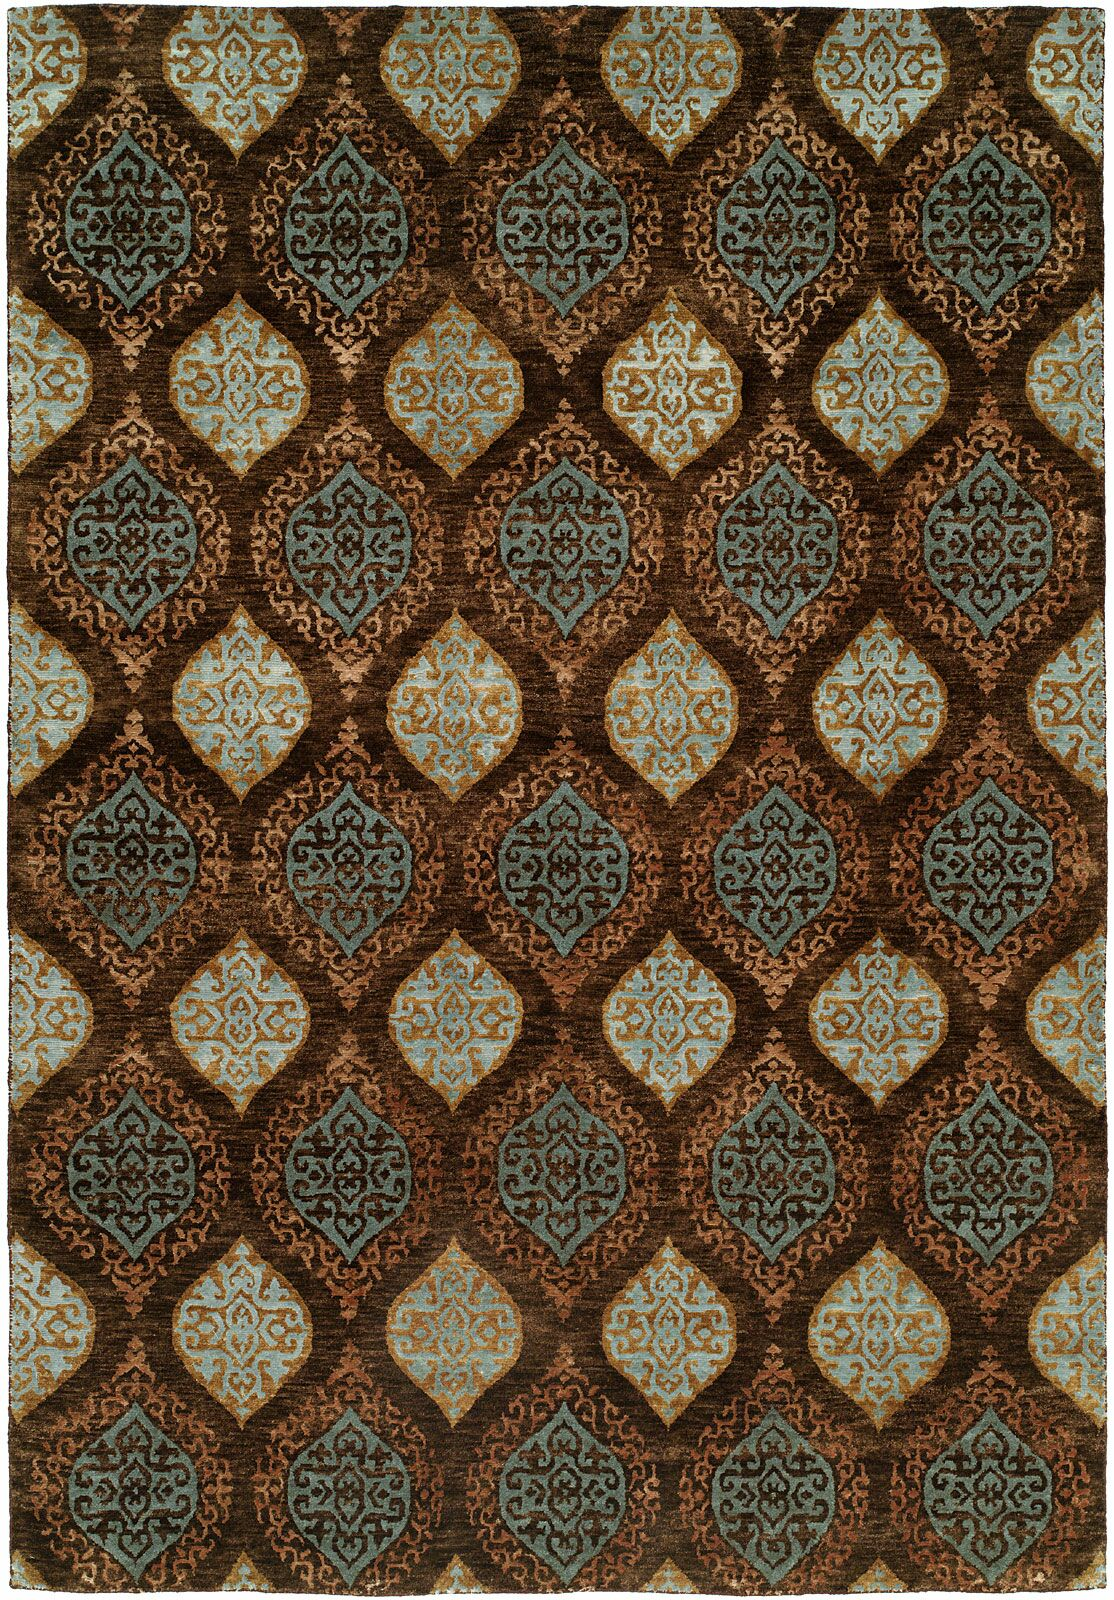 Guayaquil Hand-Knotted Brown/Ivory Area Rug Rug Size: Rectangle 10' x 14'